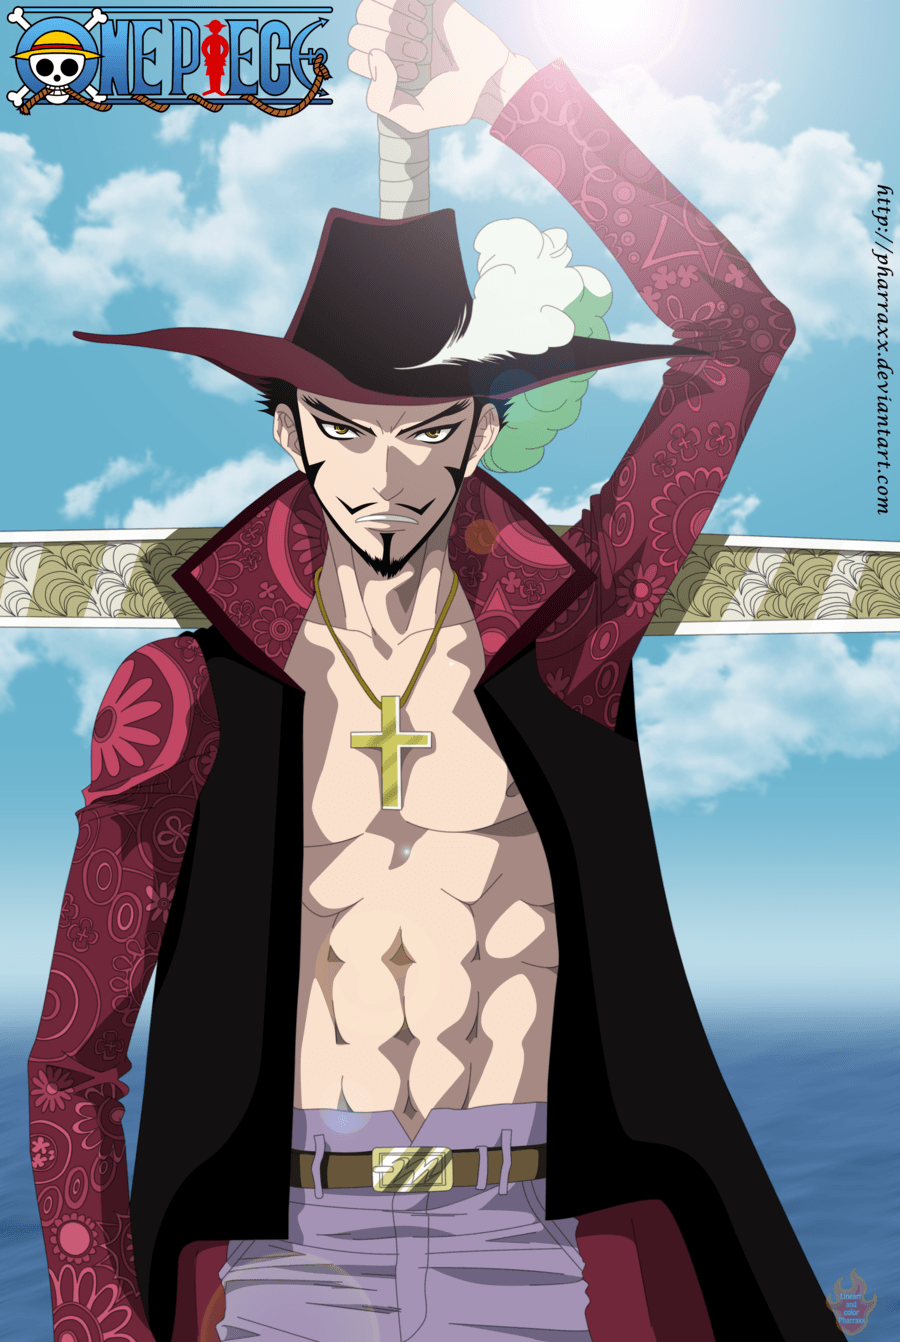 Wallpapers Dracule Mihawk by R